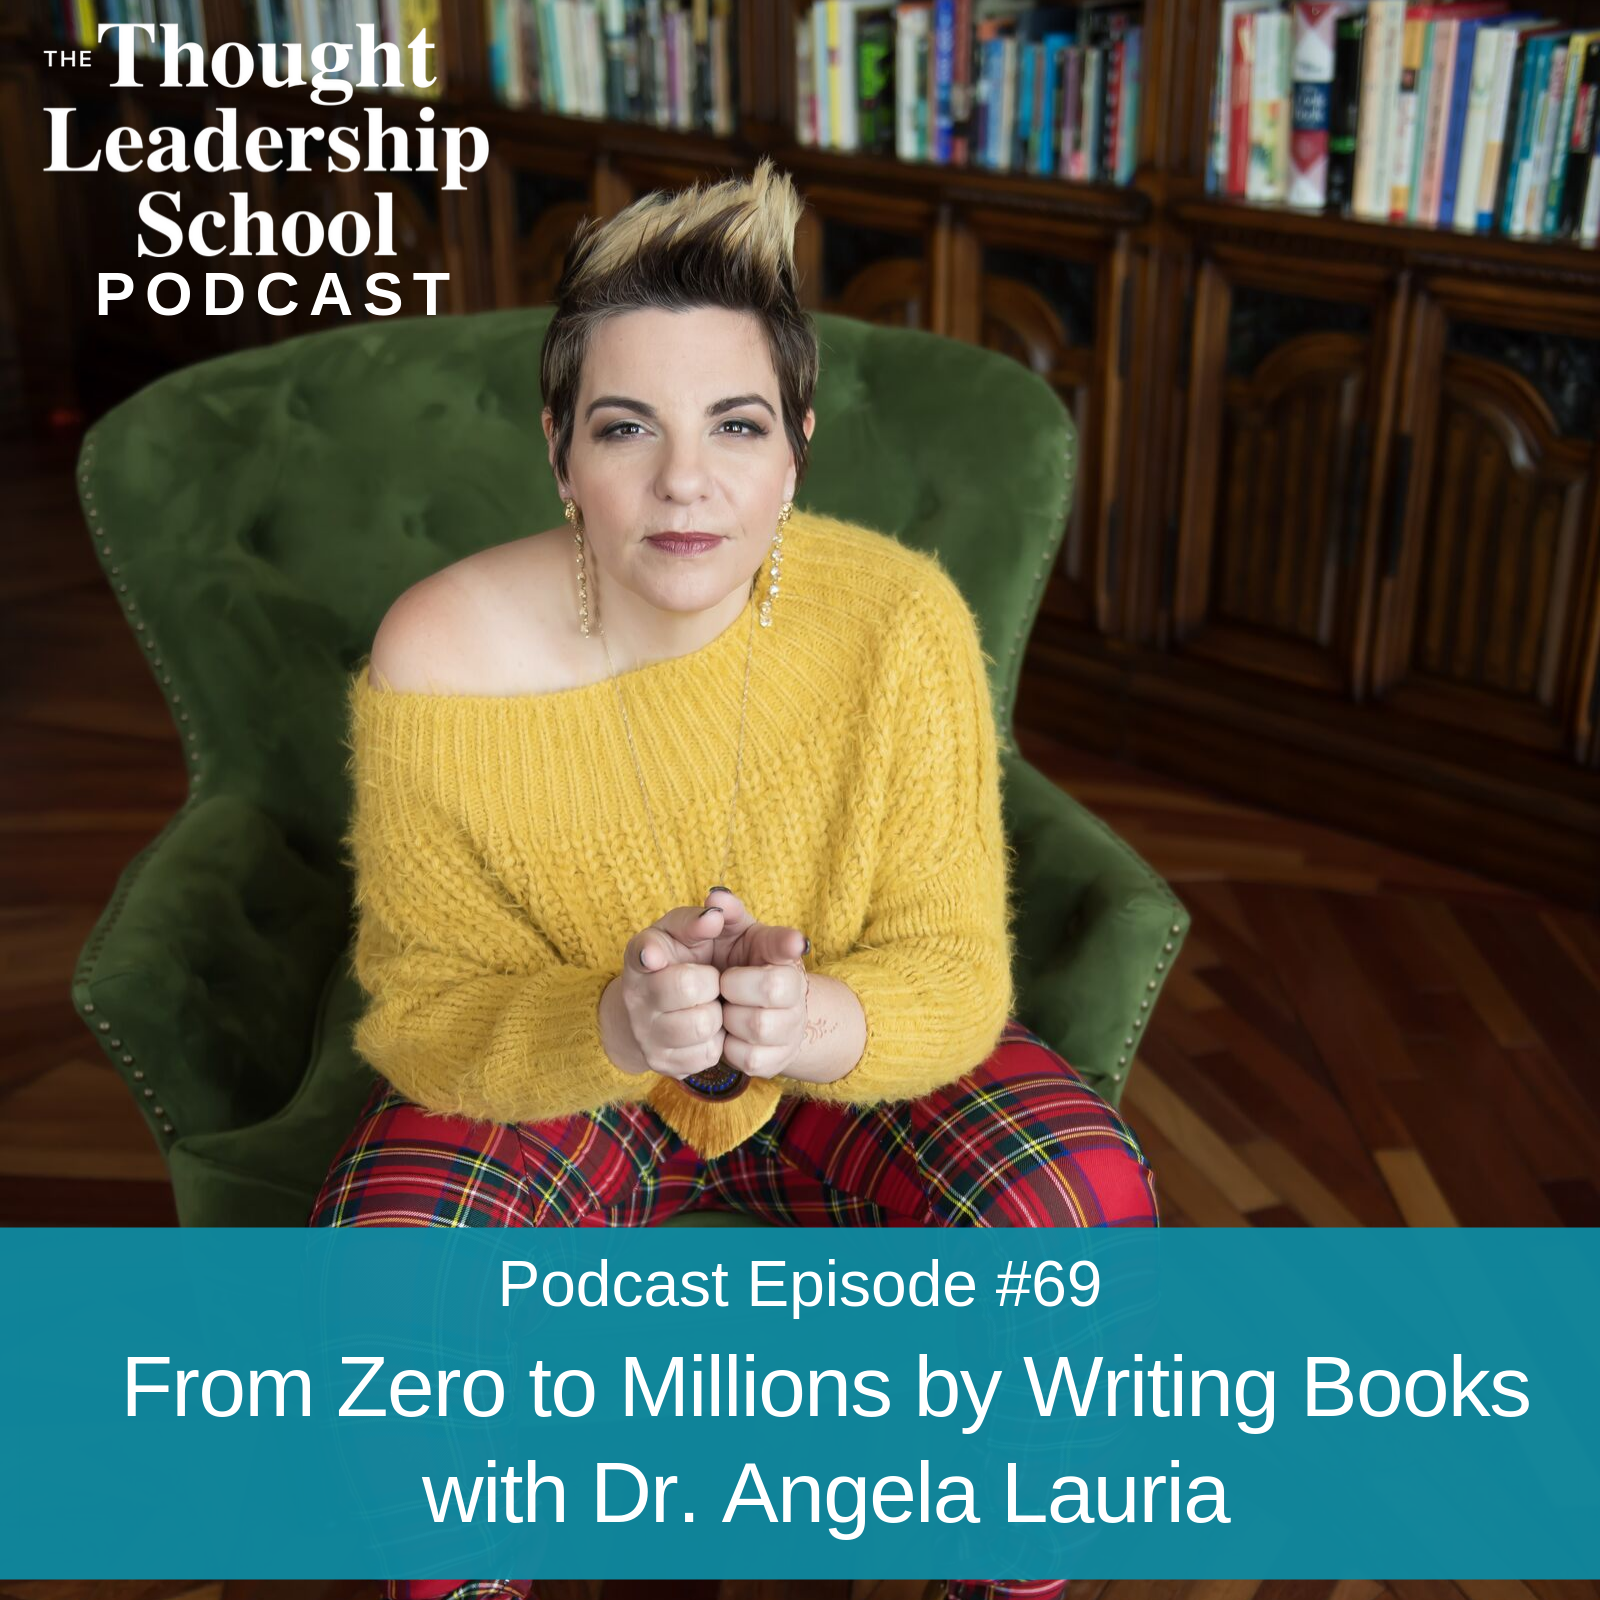 Ep #69: From Zero to Millions by Writing Books with Dr. Angela Lauria